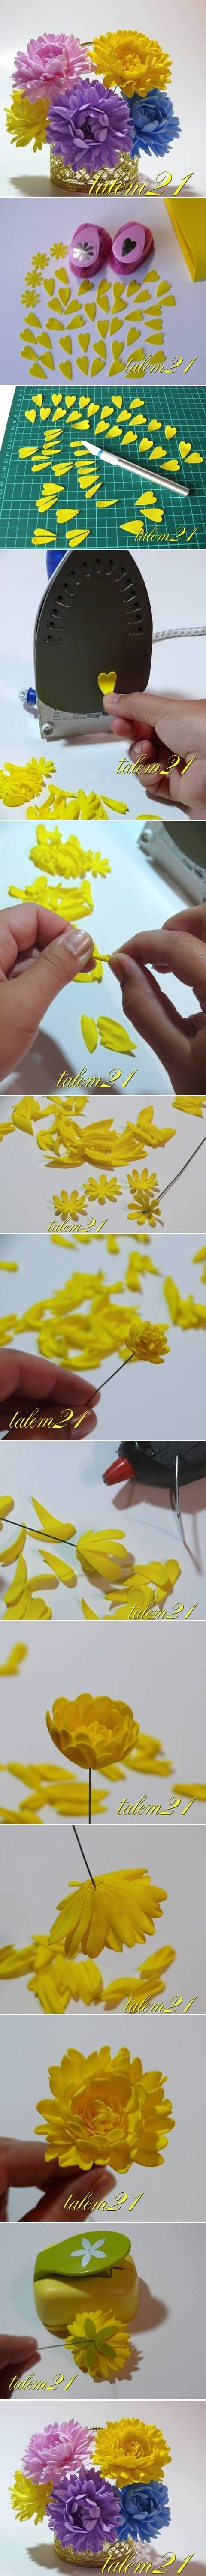 DIY Small Chrysanthemum Flower DIY Small Chrysanthemum Flower by diyforever